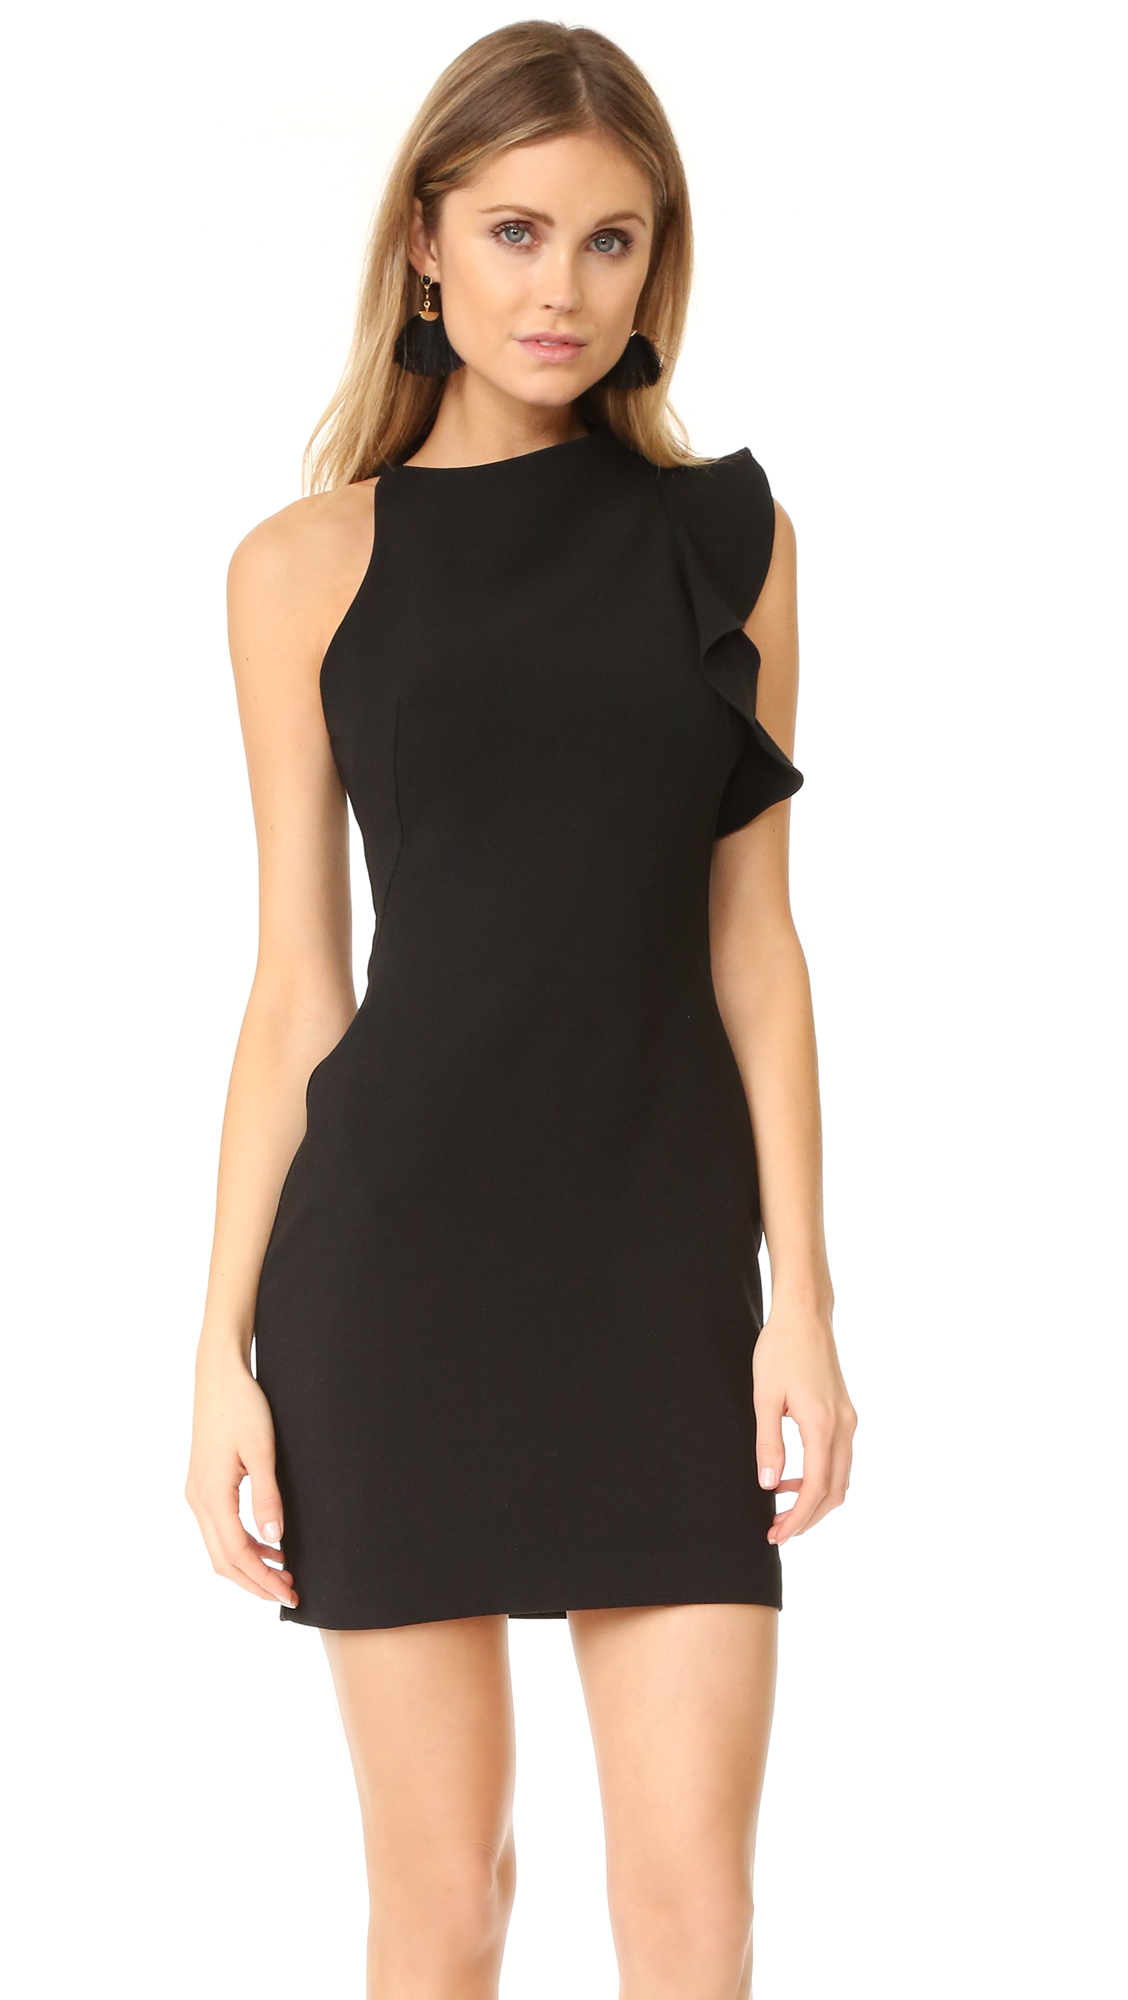 Black Halo Pabla Mini Dress - Black